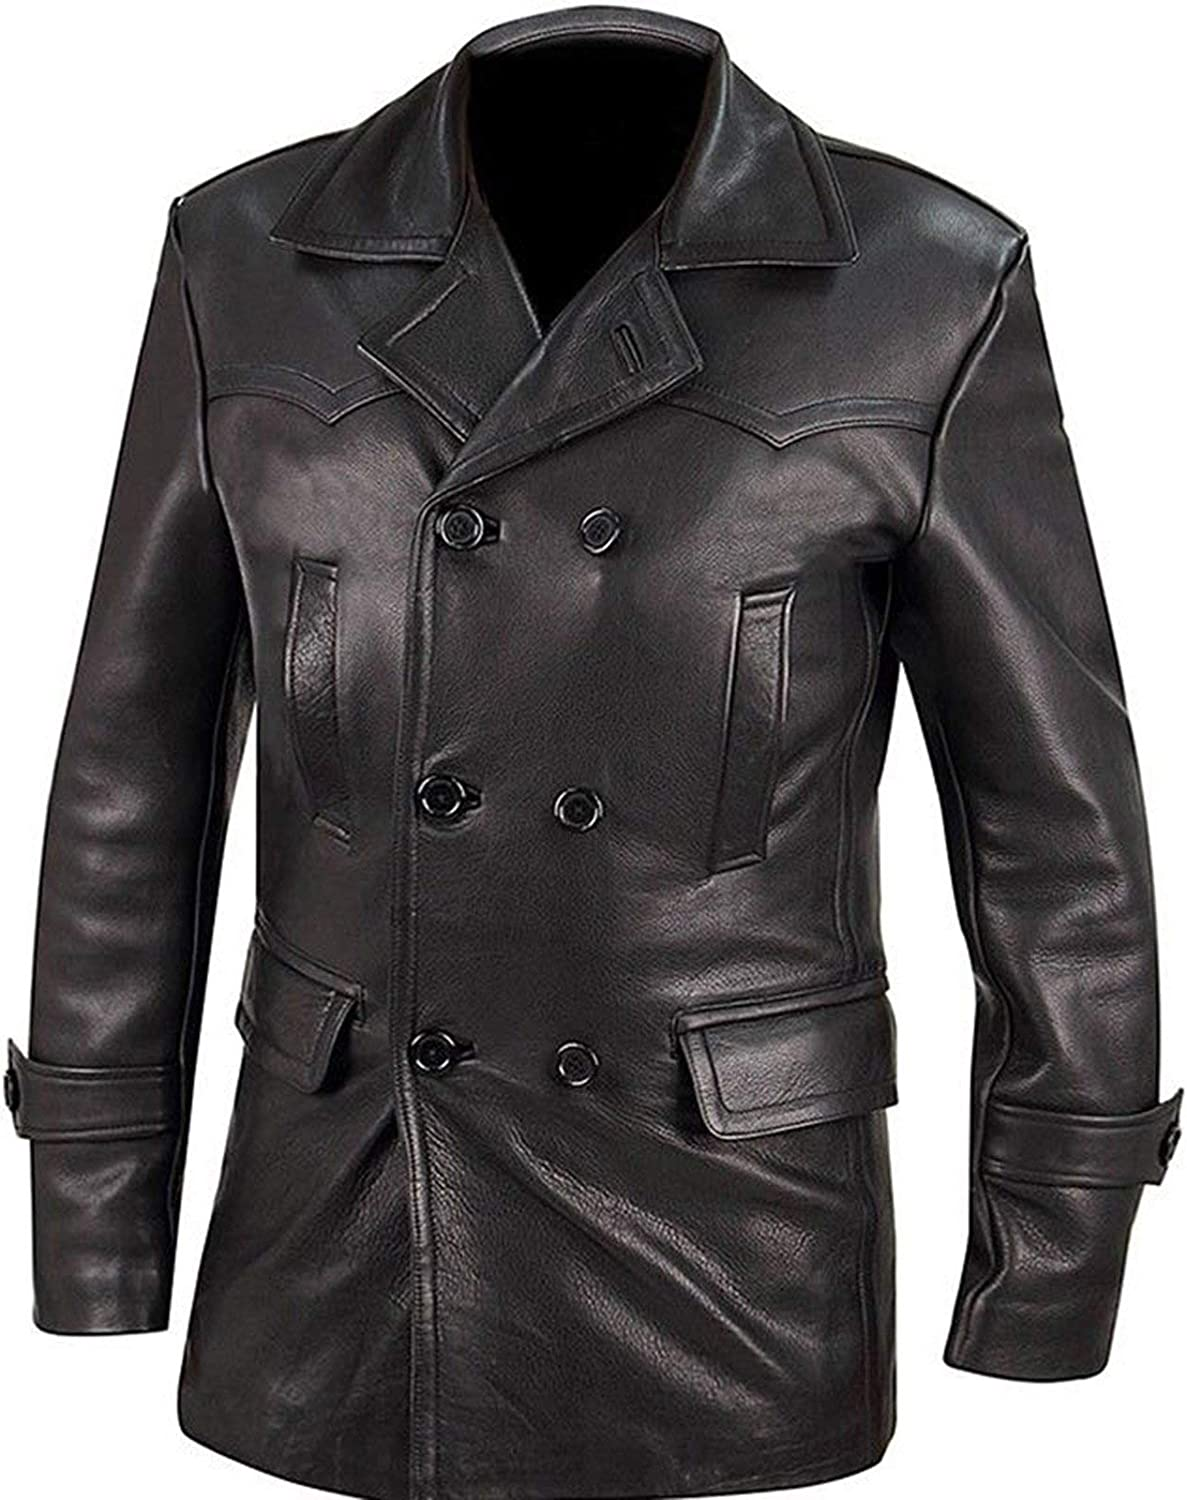 III-Fashions Mens German Classic Officer WW2 Military Uniform Black Leather Trench Coat